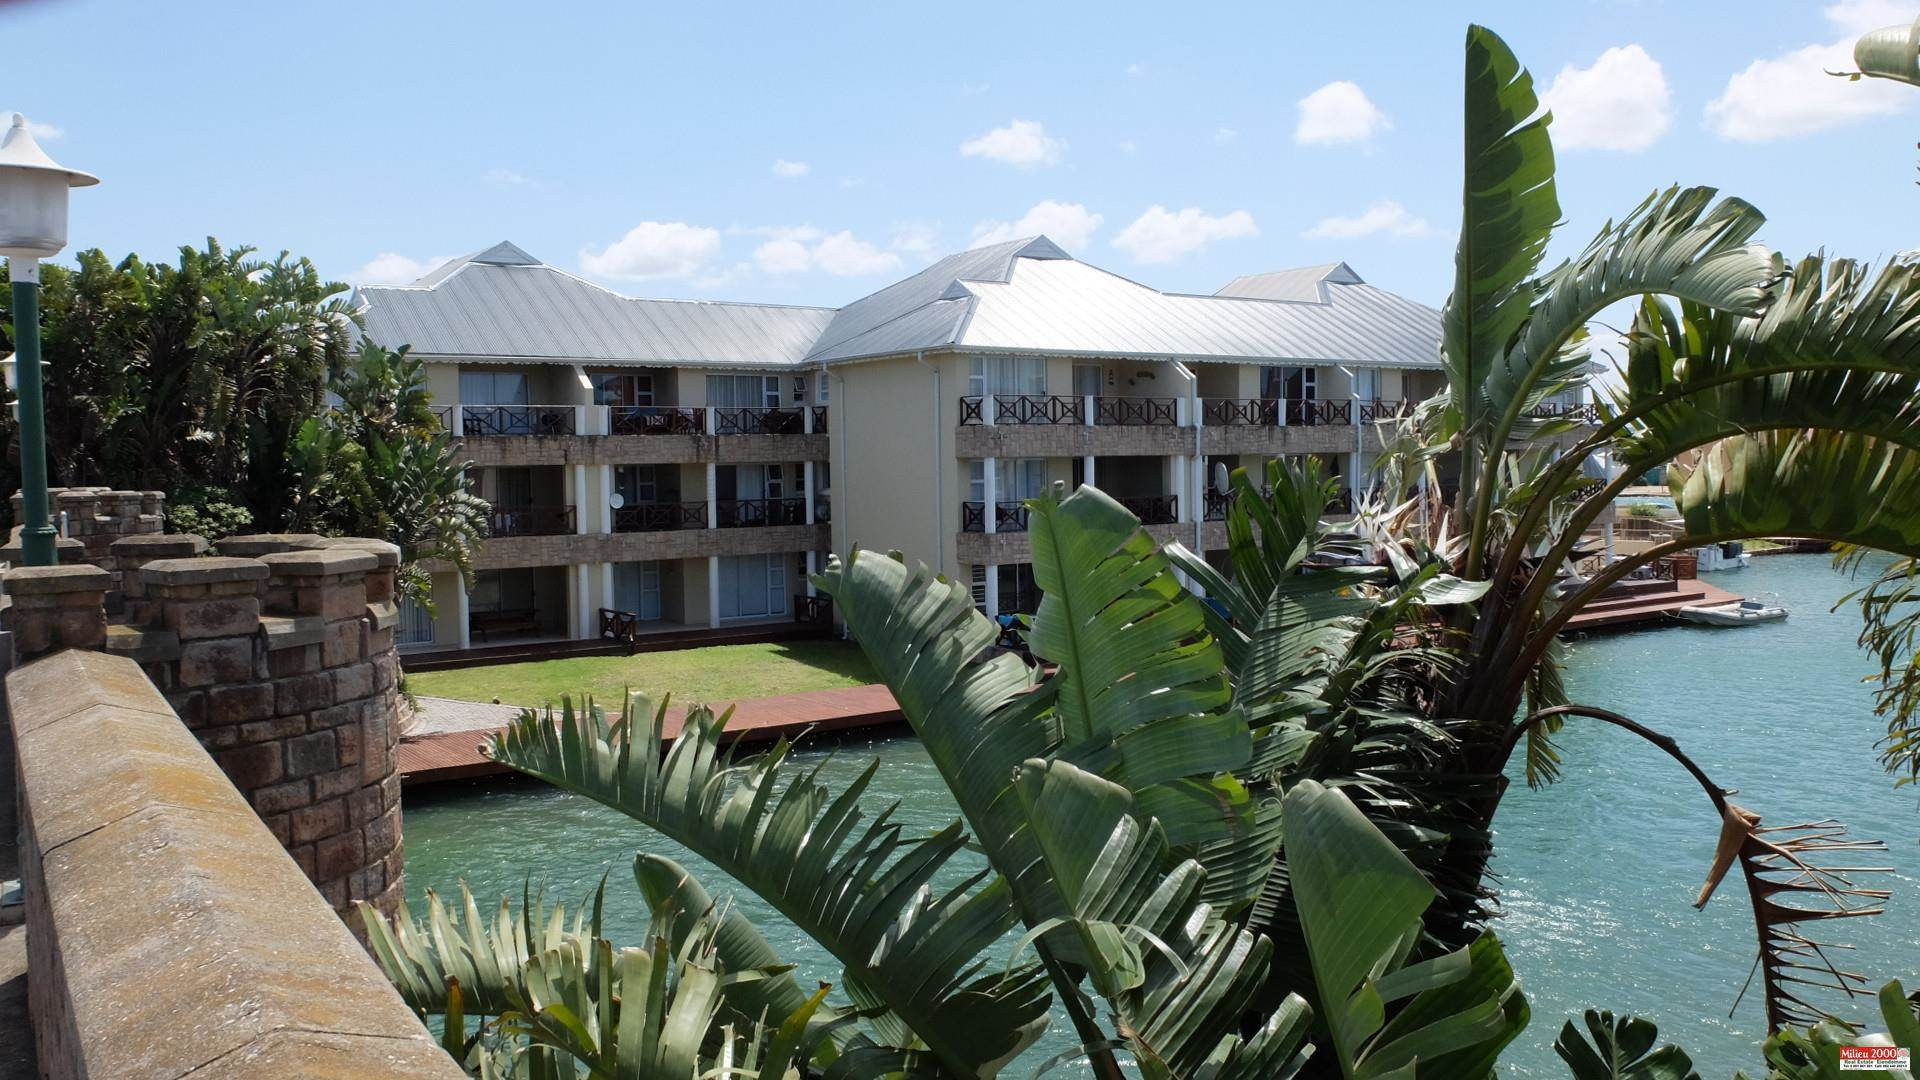 Apartment For Sale: MARINA MARTINIQUE, JEFFREYS BAY (Bath : 2.0 - Beds : 3.0 - Beautiful furnished apartment in sought after security complex with 24 hour security.This stylish ap ...